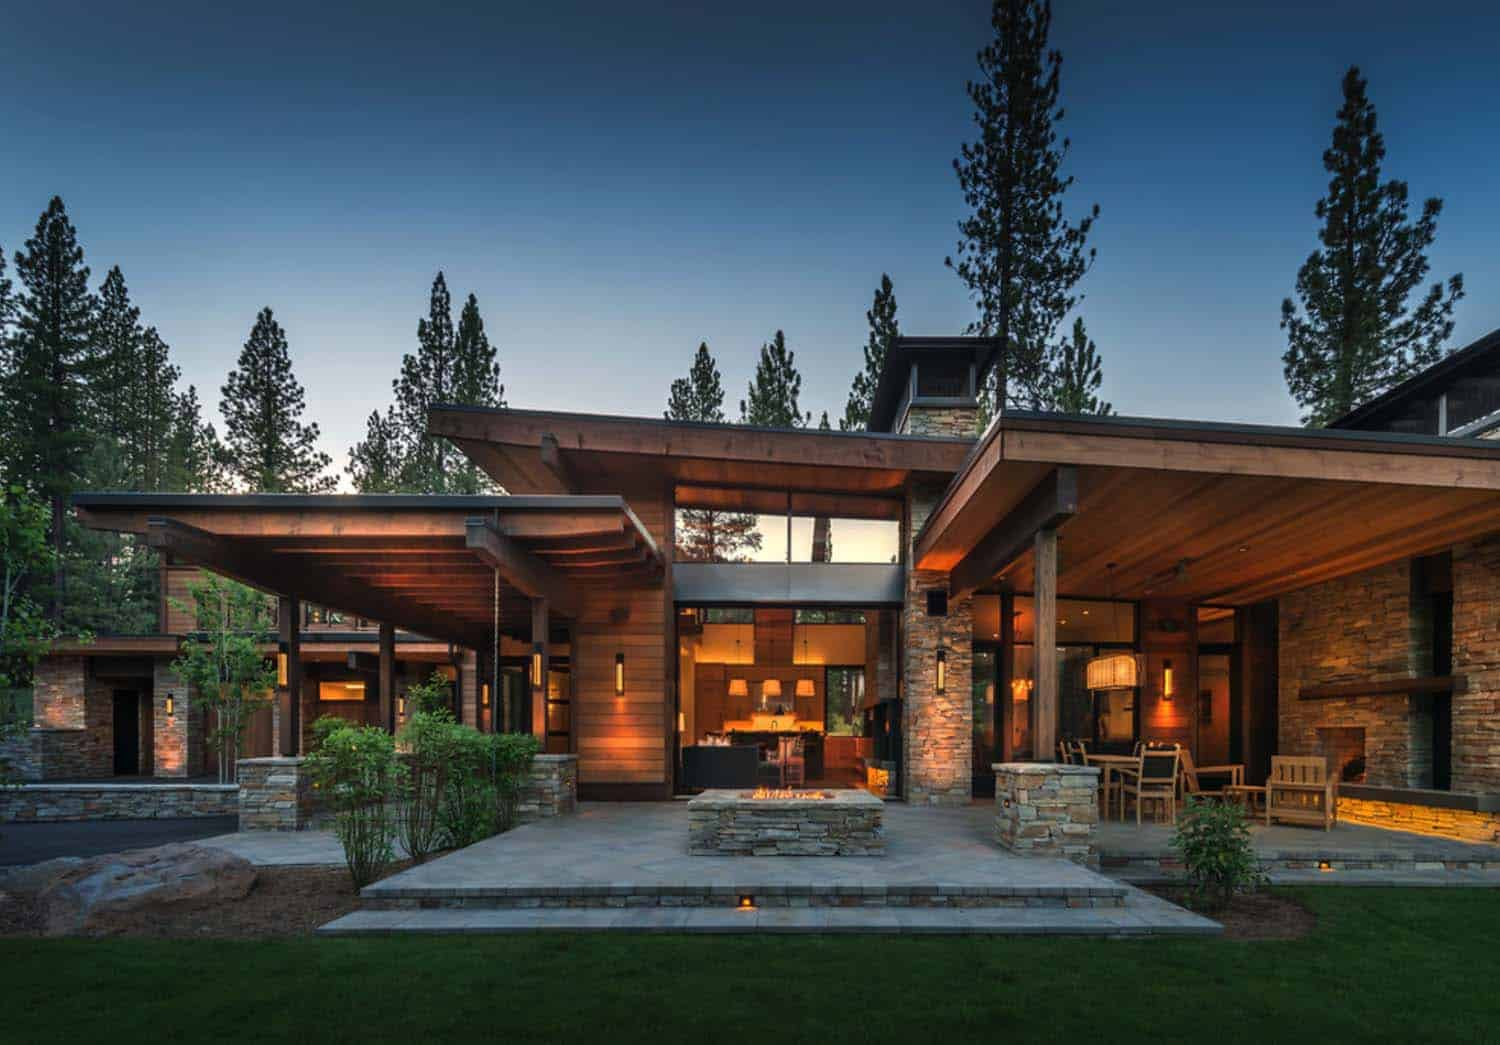 Mountain modern home in martis camp with indoor outdoor living for Mountain home designs colorado